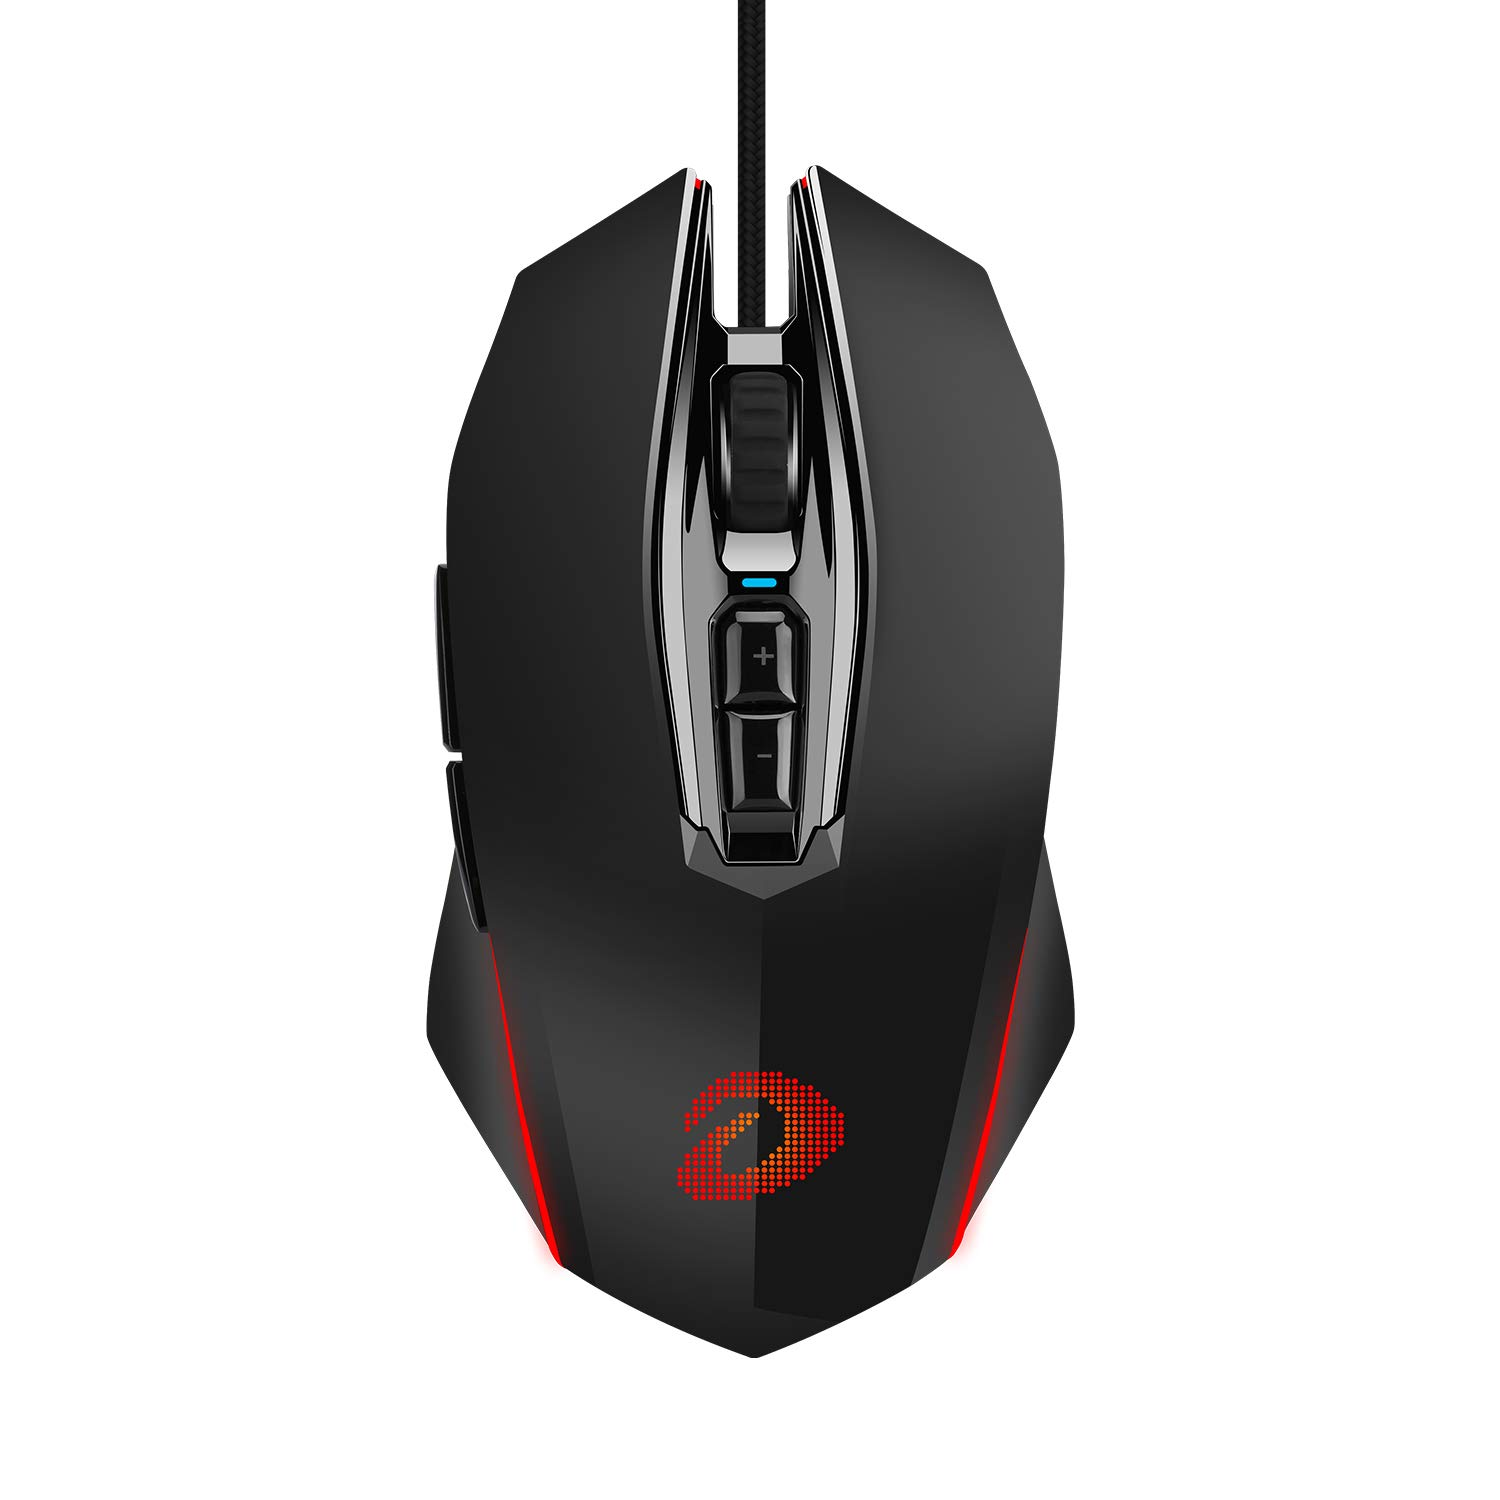 Mouse Gamer : DAREU Optico Con cable 10000 DPI 7 Program. Bo